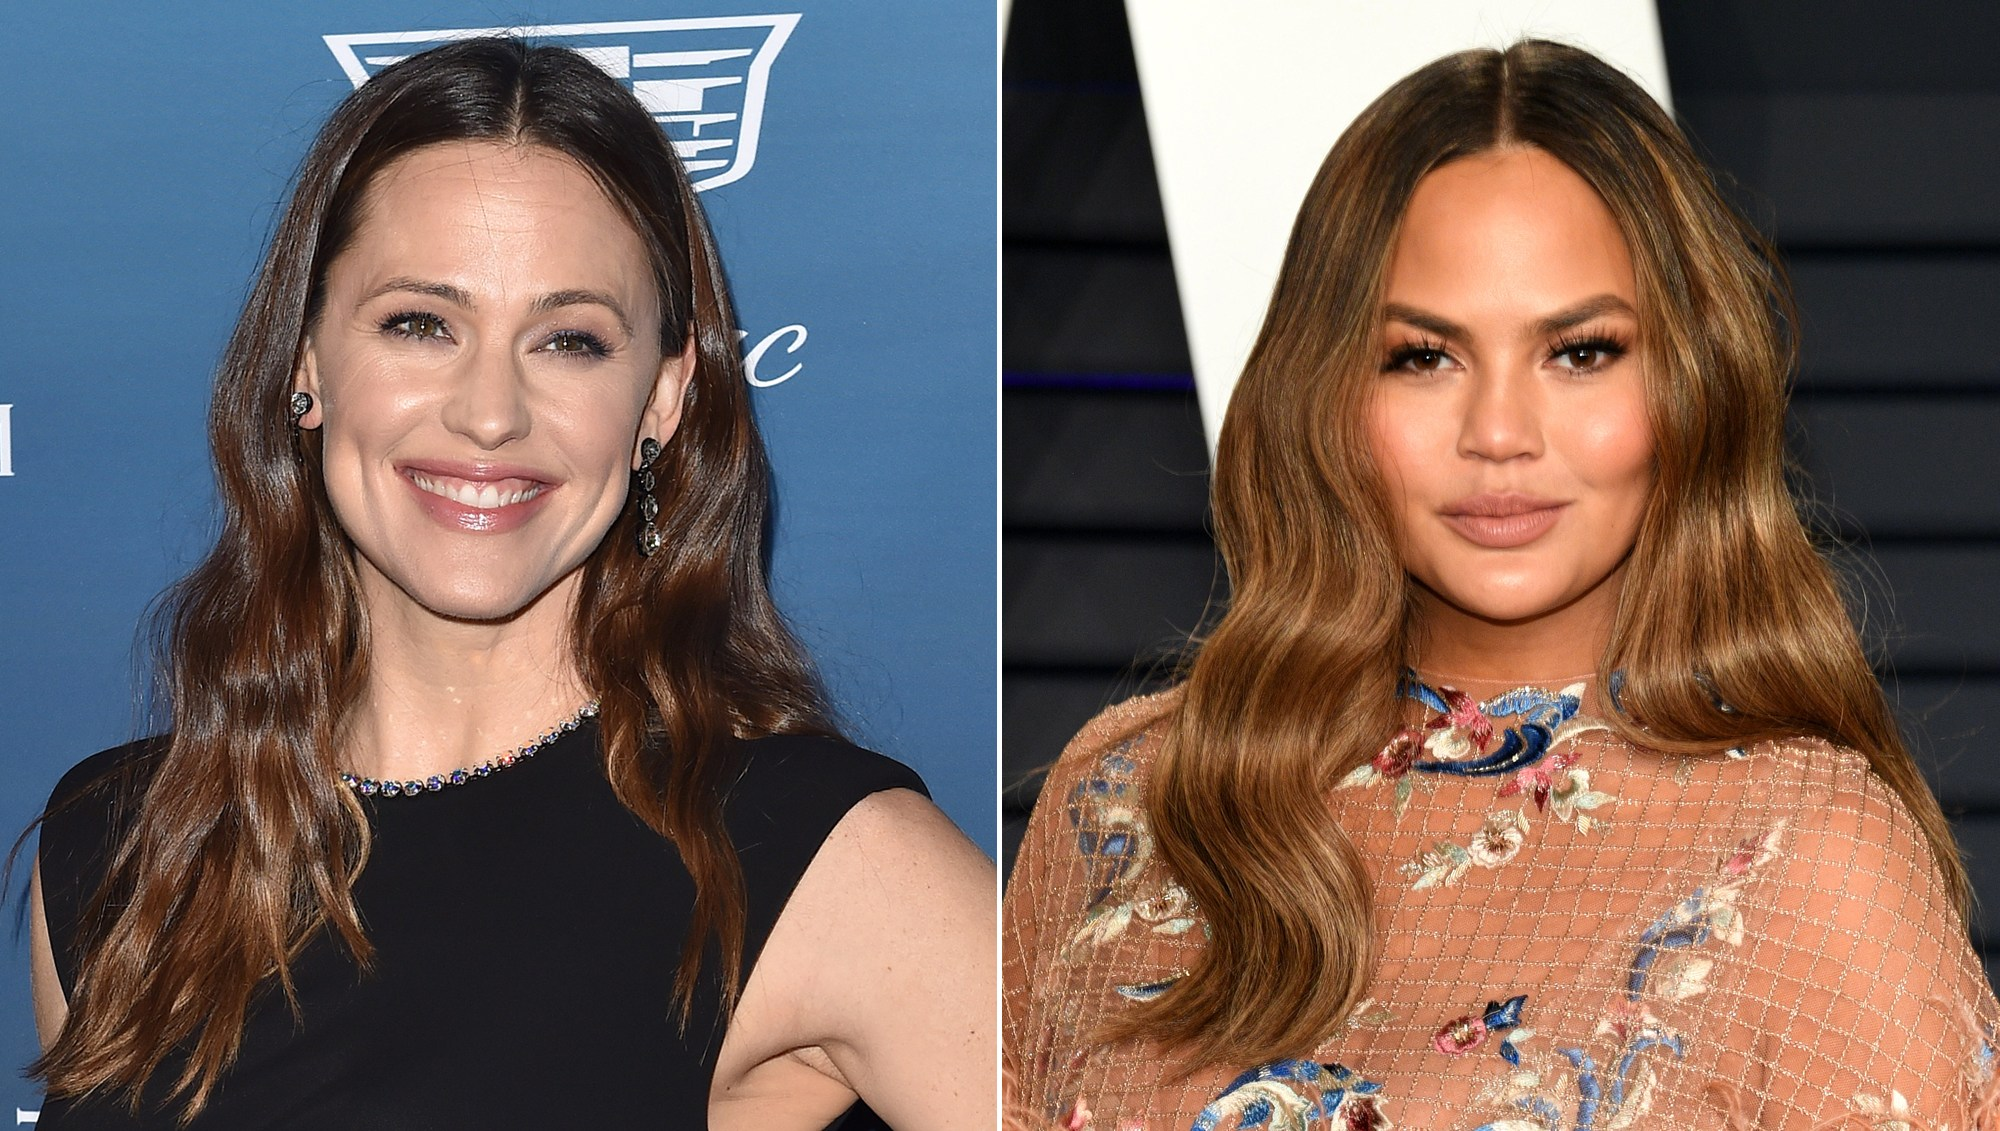 Jennifer Garner Jokes to Chrissy Teigen 'to Not Get Any Ideas' About Stealing Her Nanny From Her